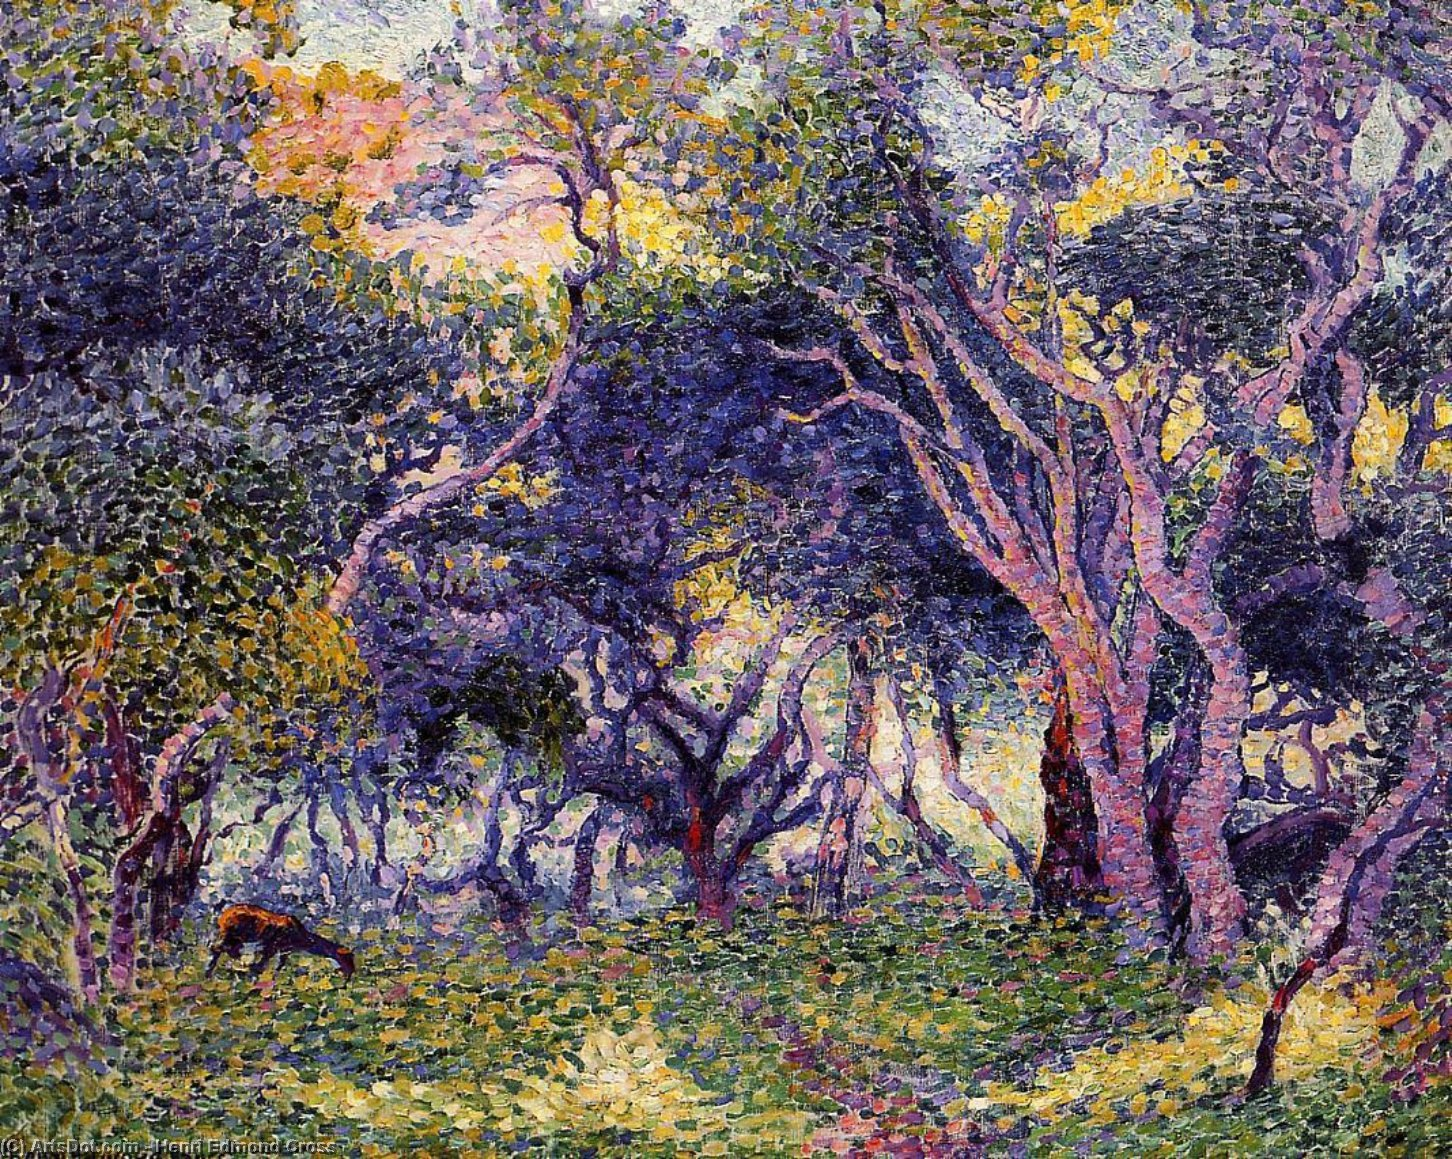 en el bosque, óleo sobre lienzo de Henri Edmond Cross (1856-1910, France)